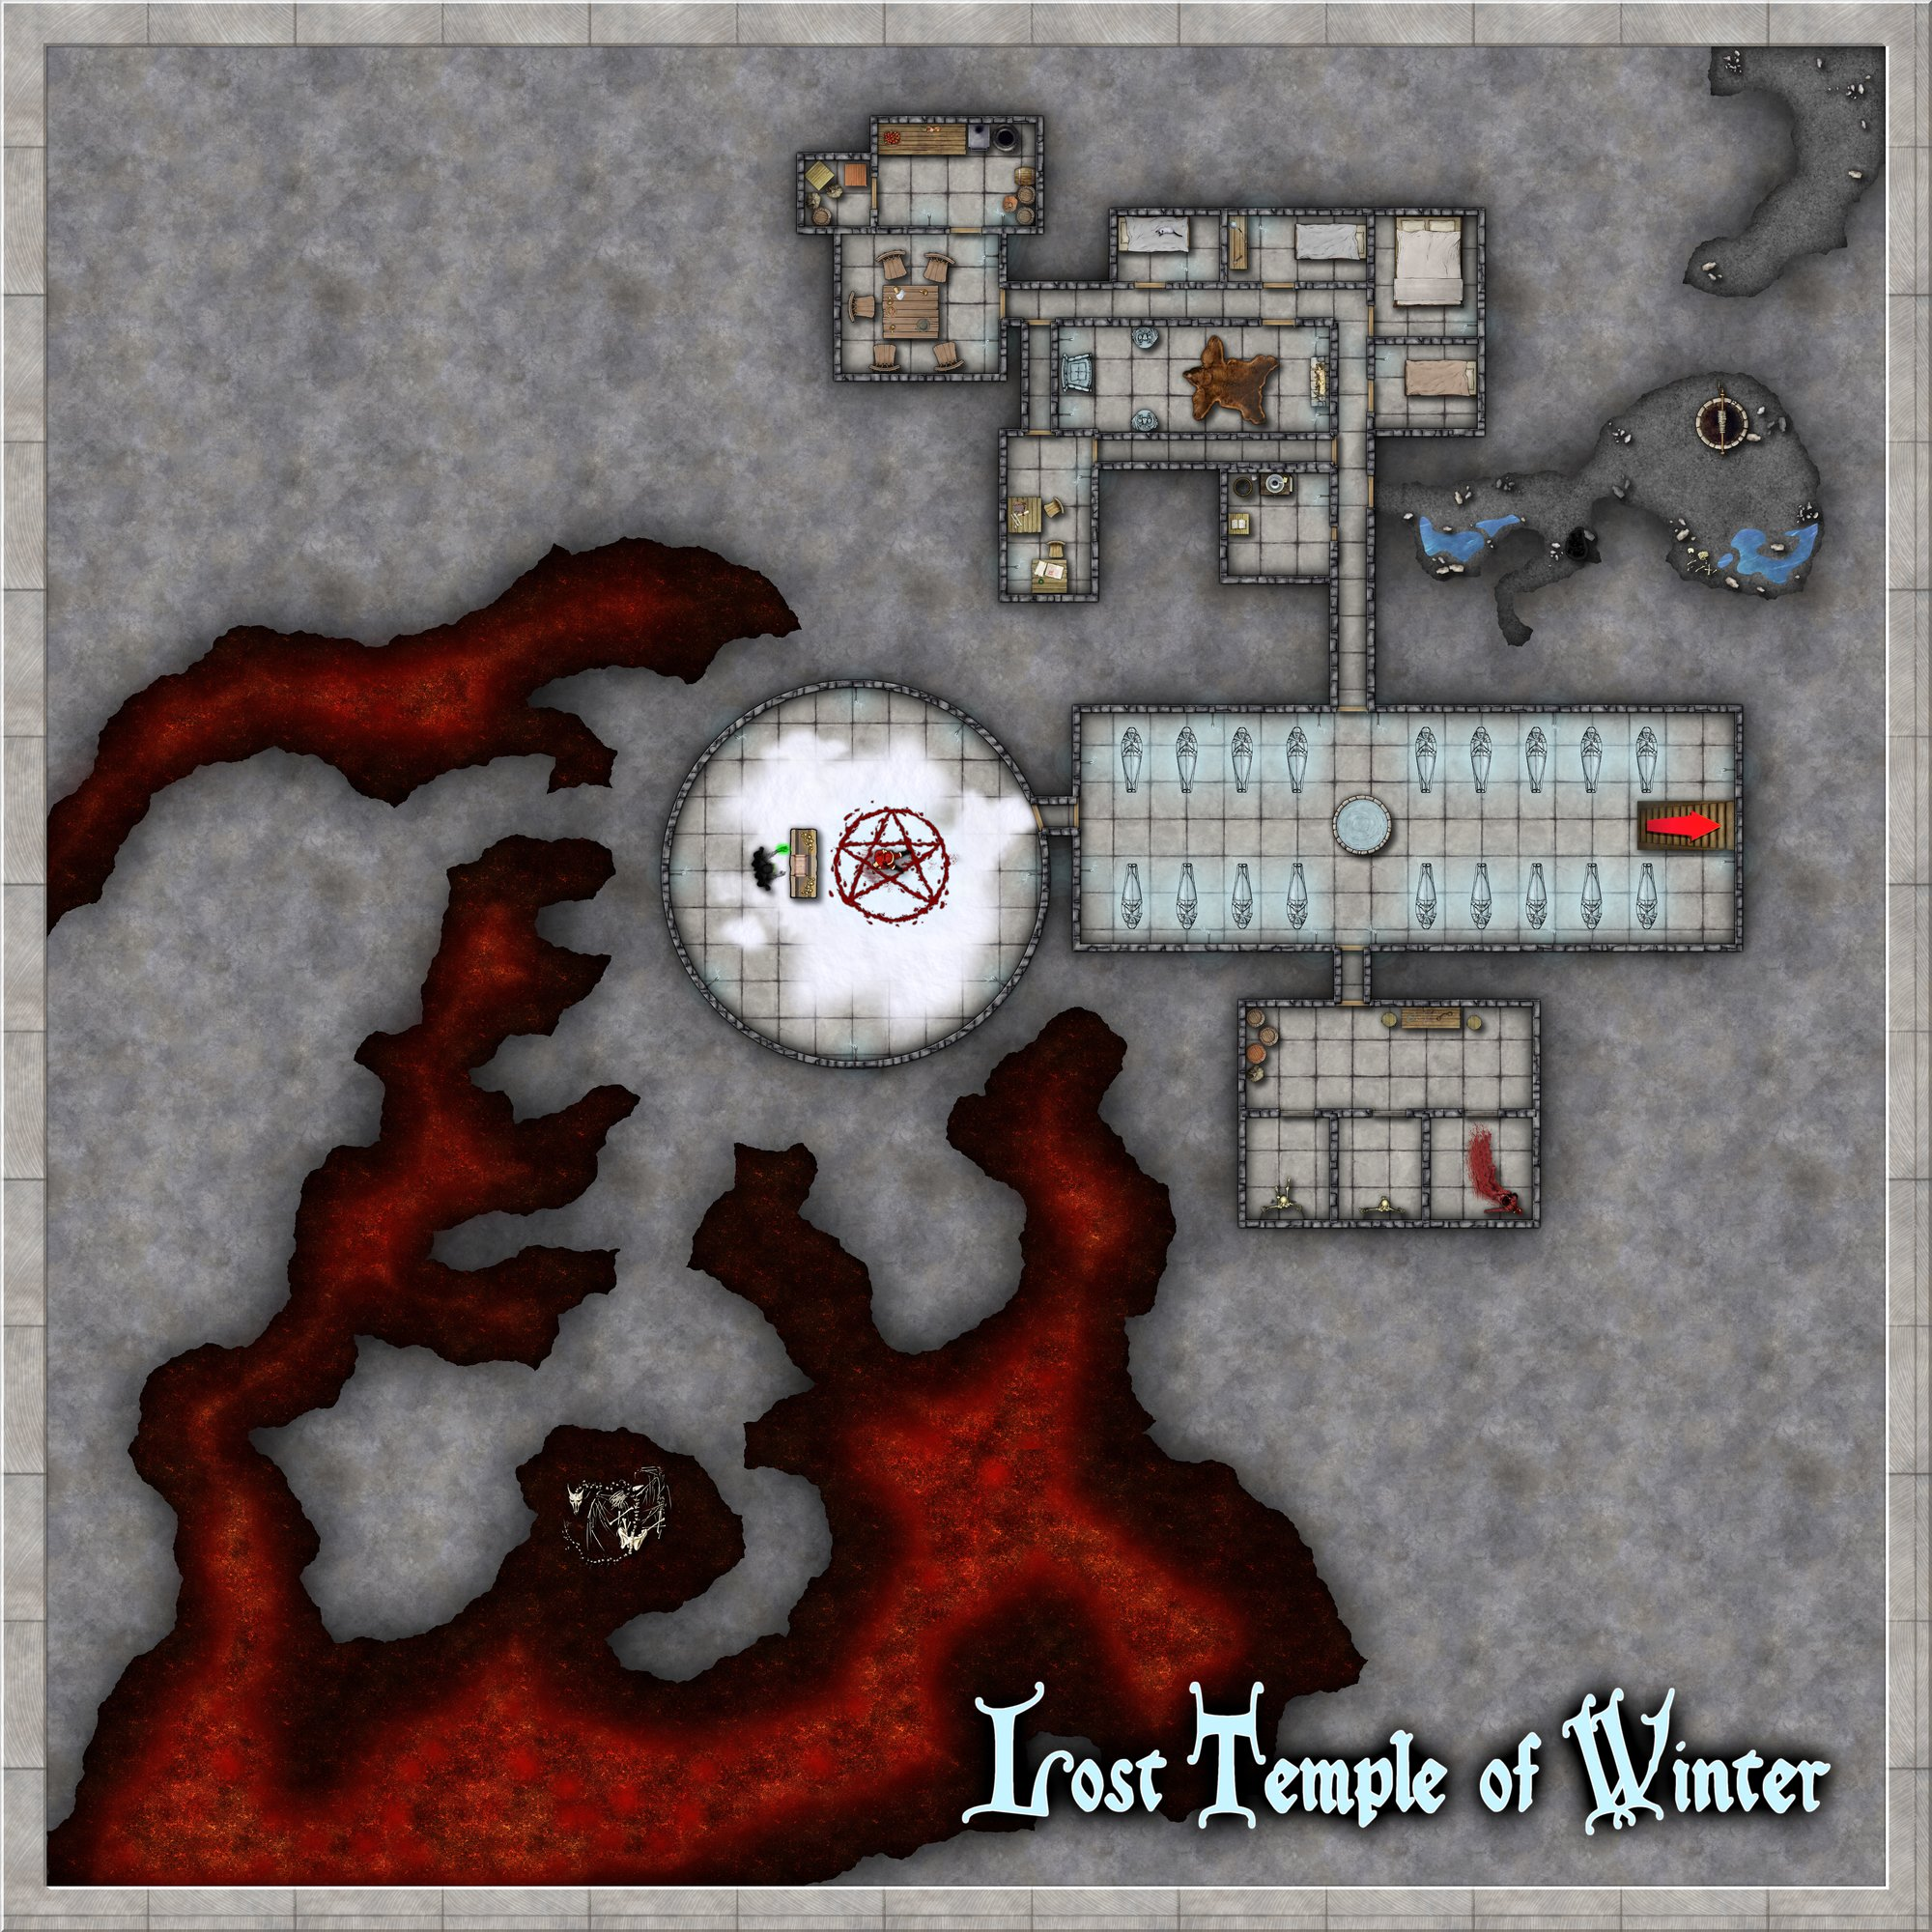 Lost Temple of Winter.JPG